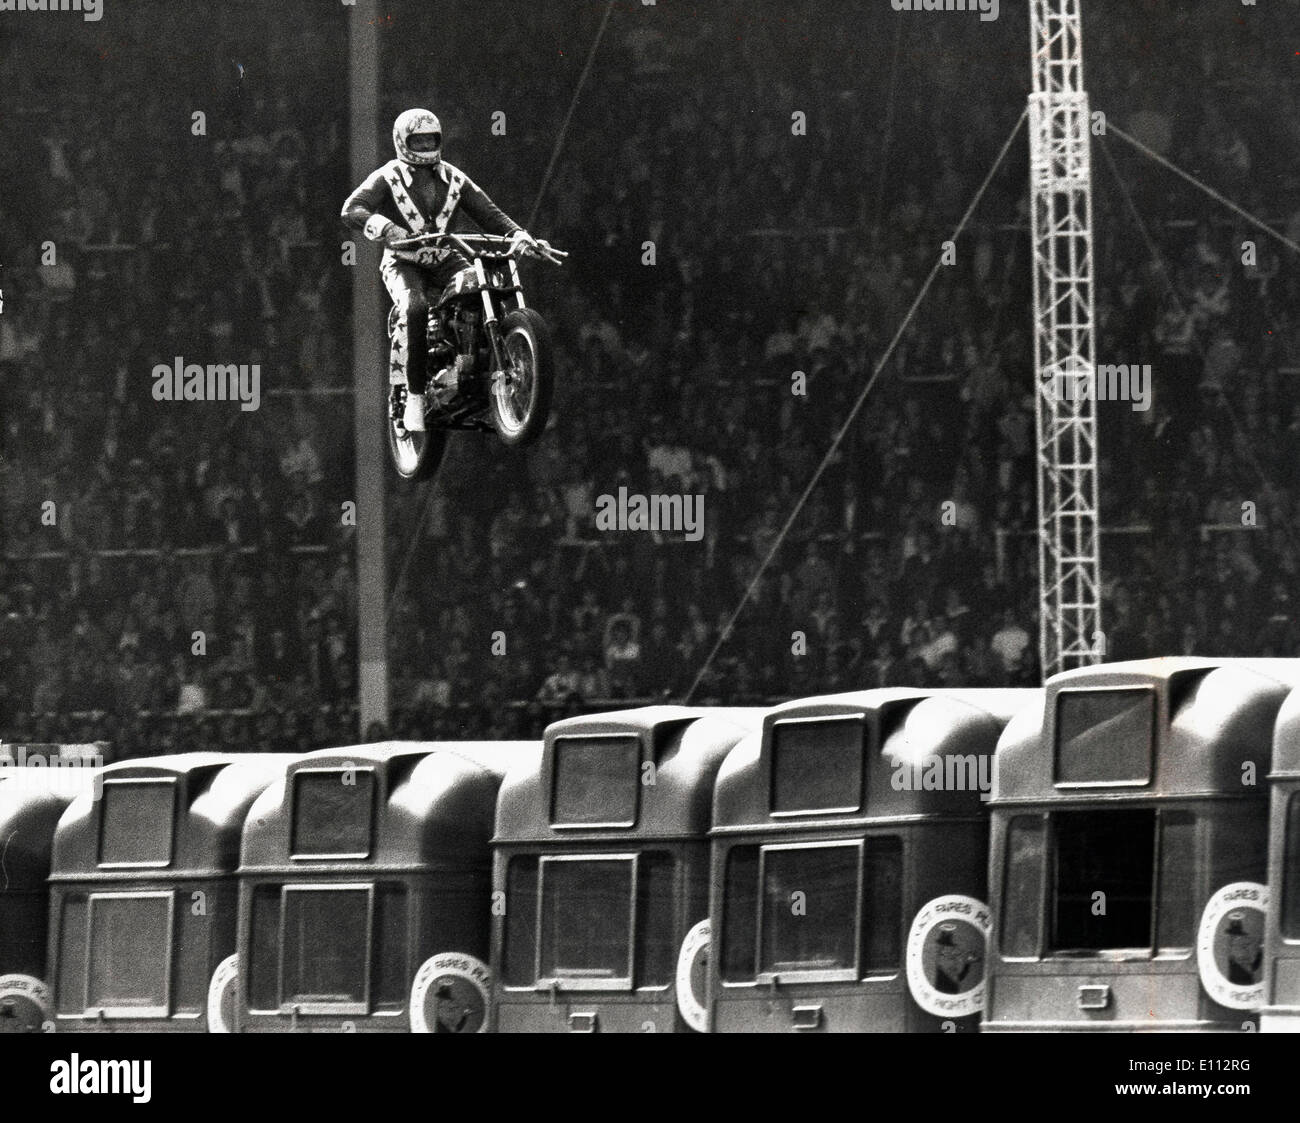 Daredevil Evel Knievel crashes after bus jump - Stock Image